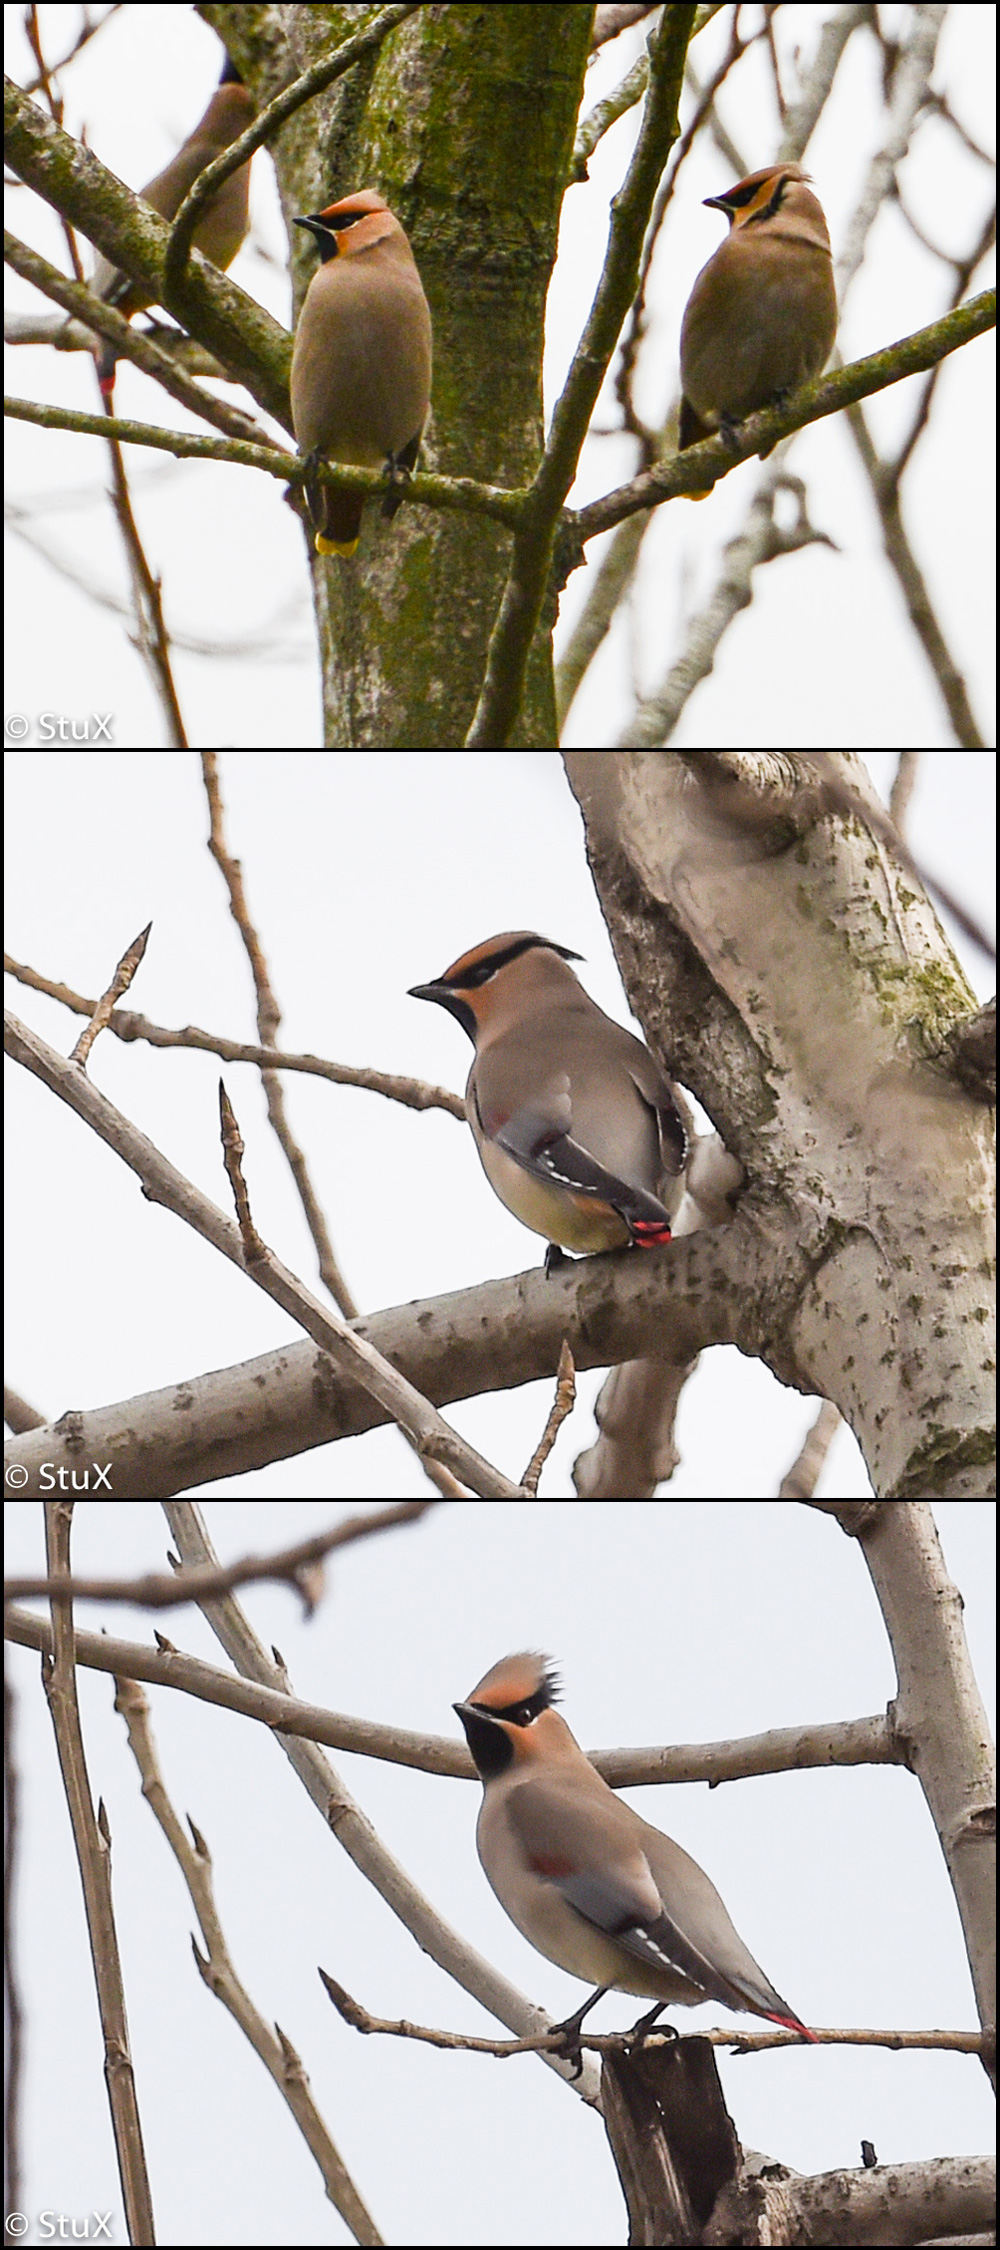 Japanese Waxwing (red-tipped tail) and Bohemian Waxwing (yellow-tipped tail), Chongming Island.